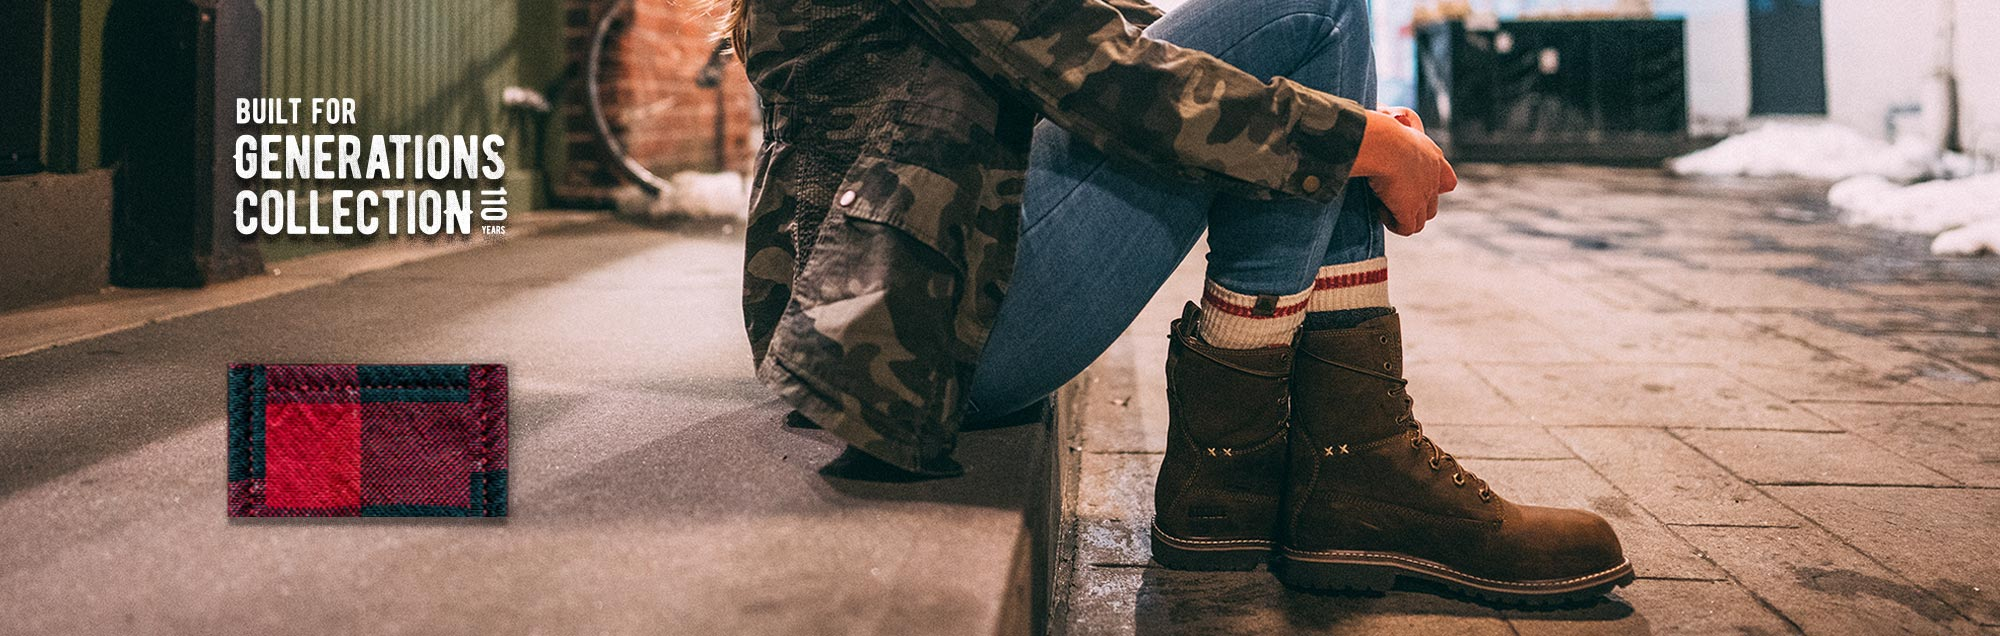 Women's Generations Boots for Life and Work